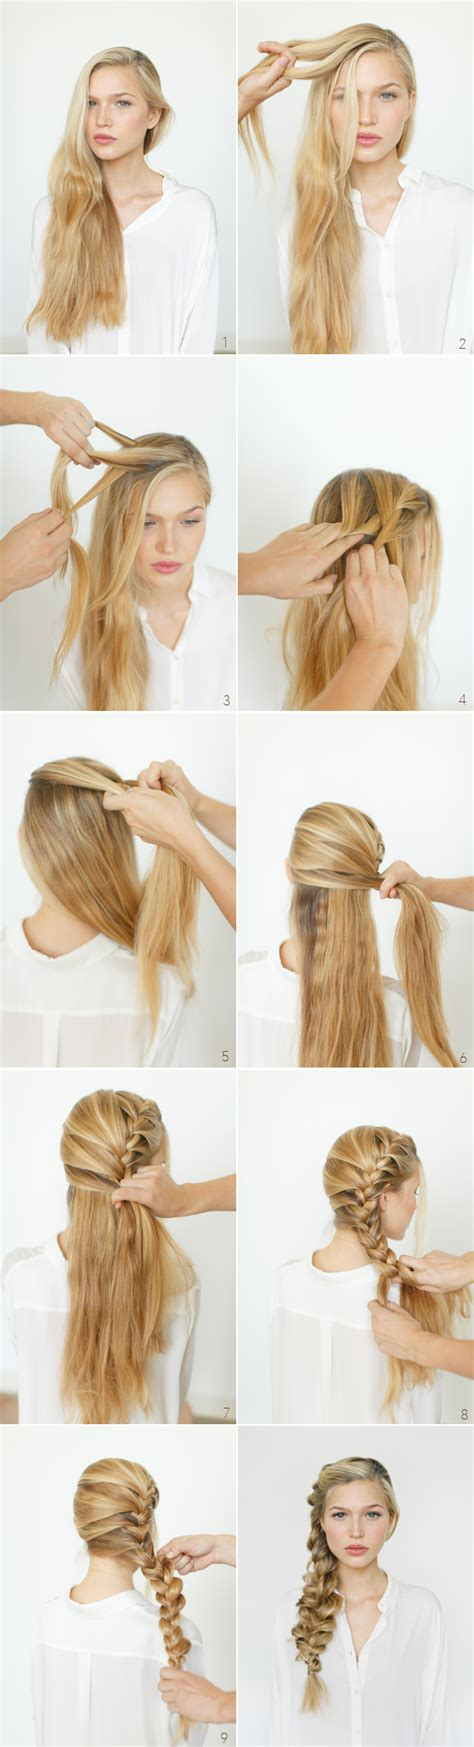 braids hairstyles how to do 12 romantic braided hairstyles with useful tutorials